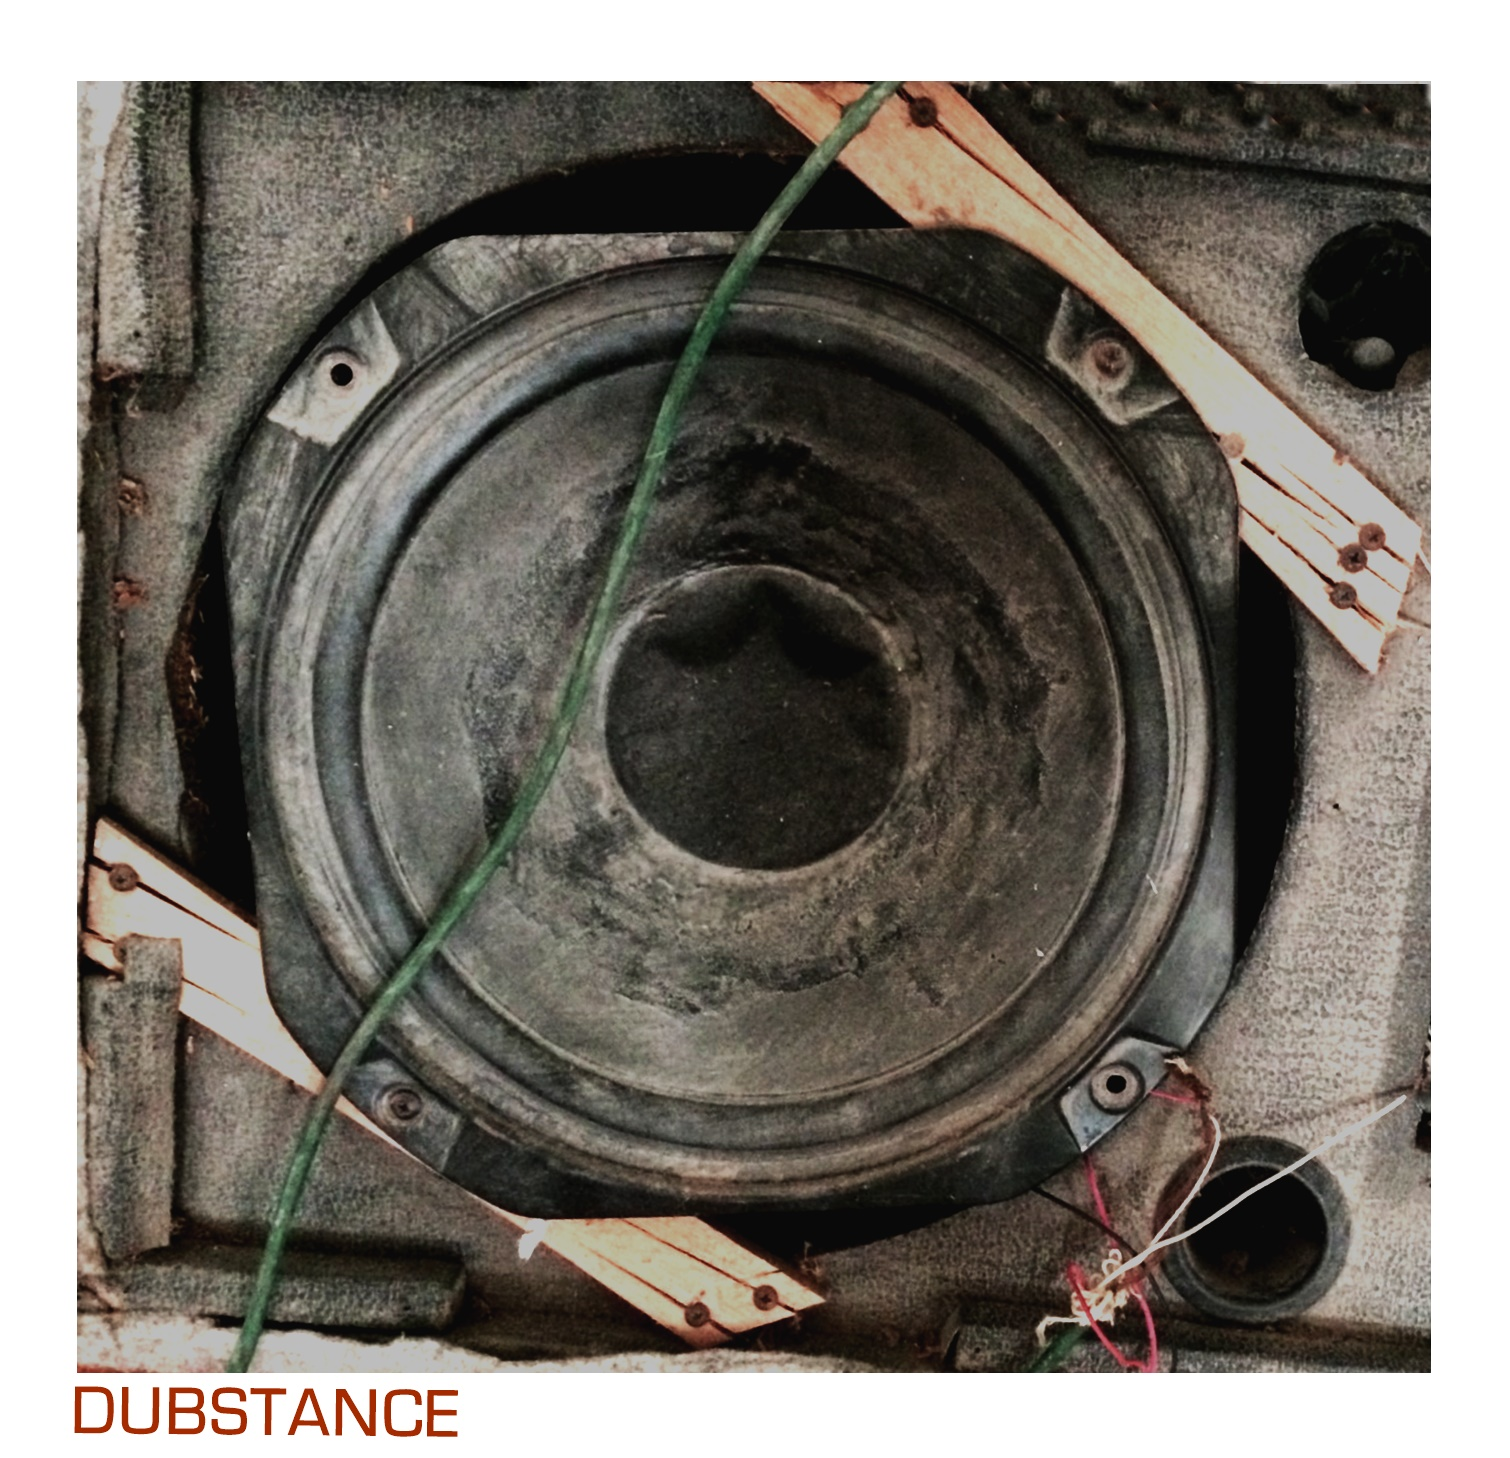 Dubstance – Exclusive mix by Fergus Mulvany international Sand sculptor and music freak